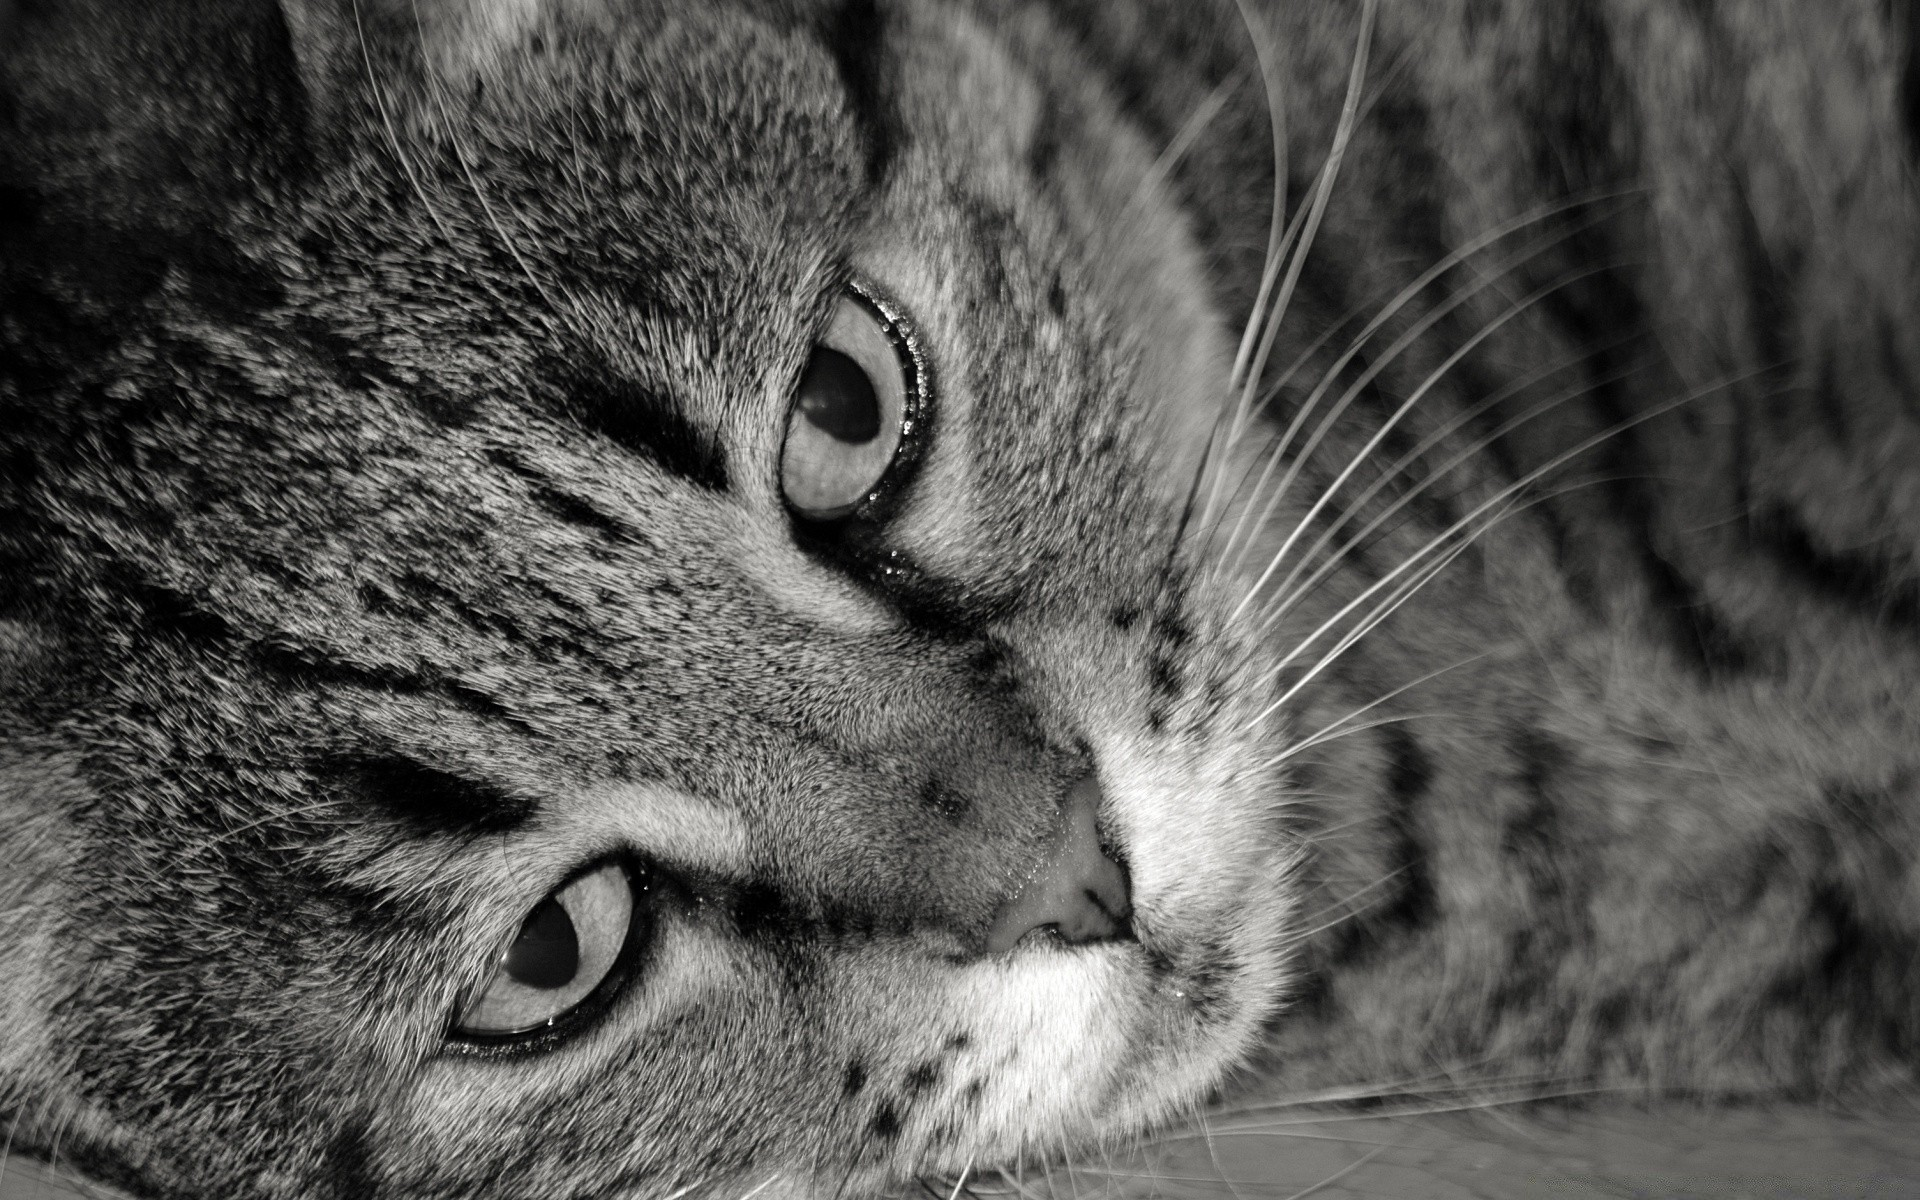 Tiger Cat Black And White Iphone Wallpapers For Free